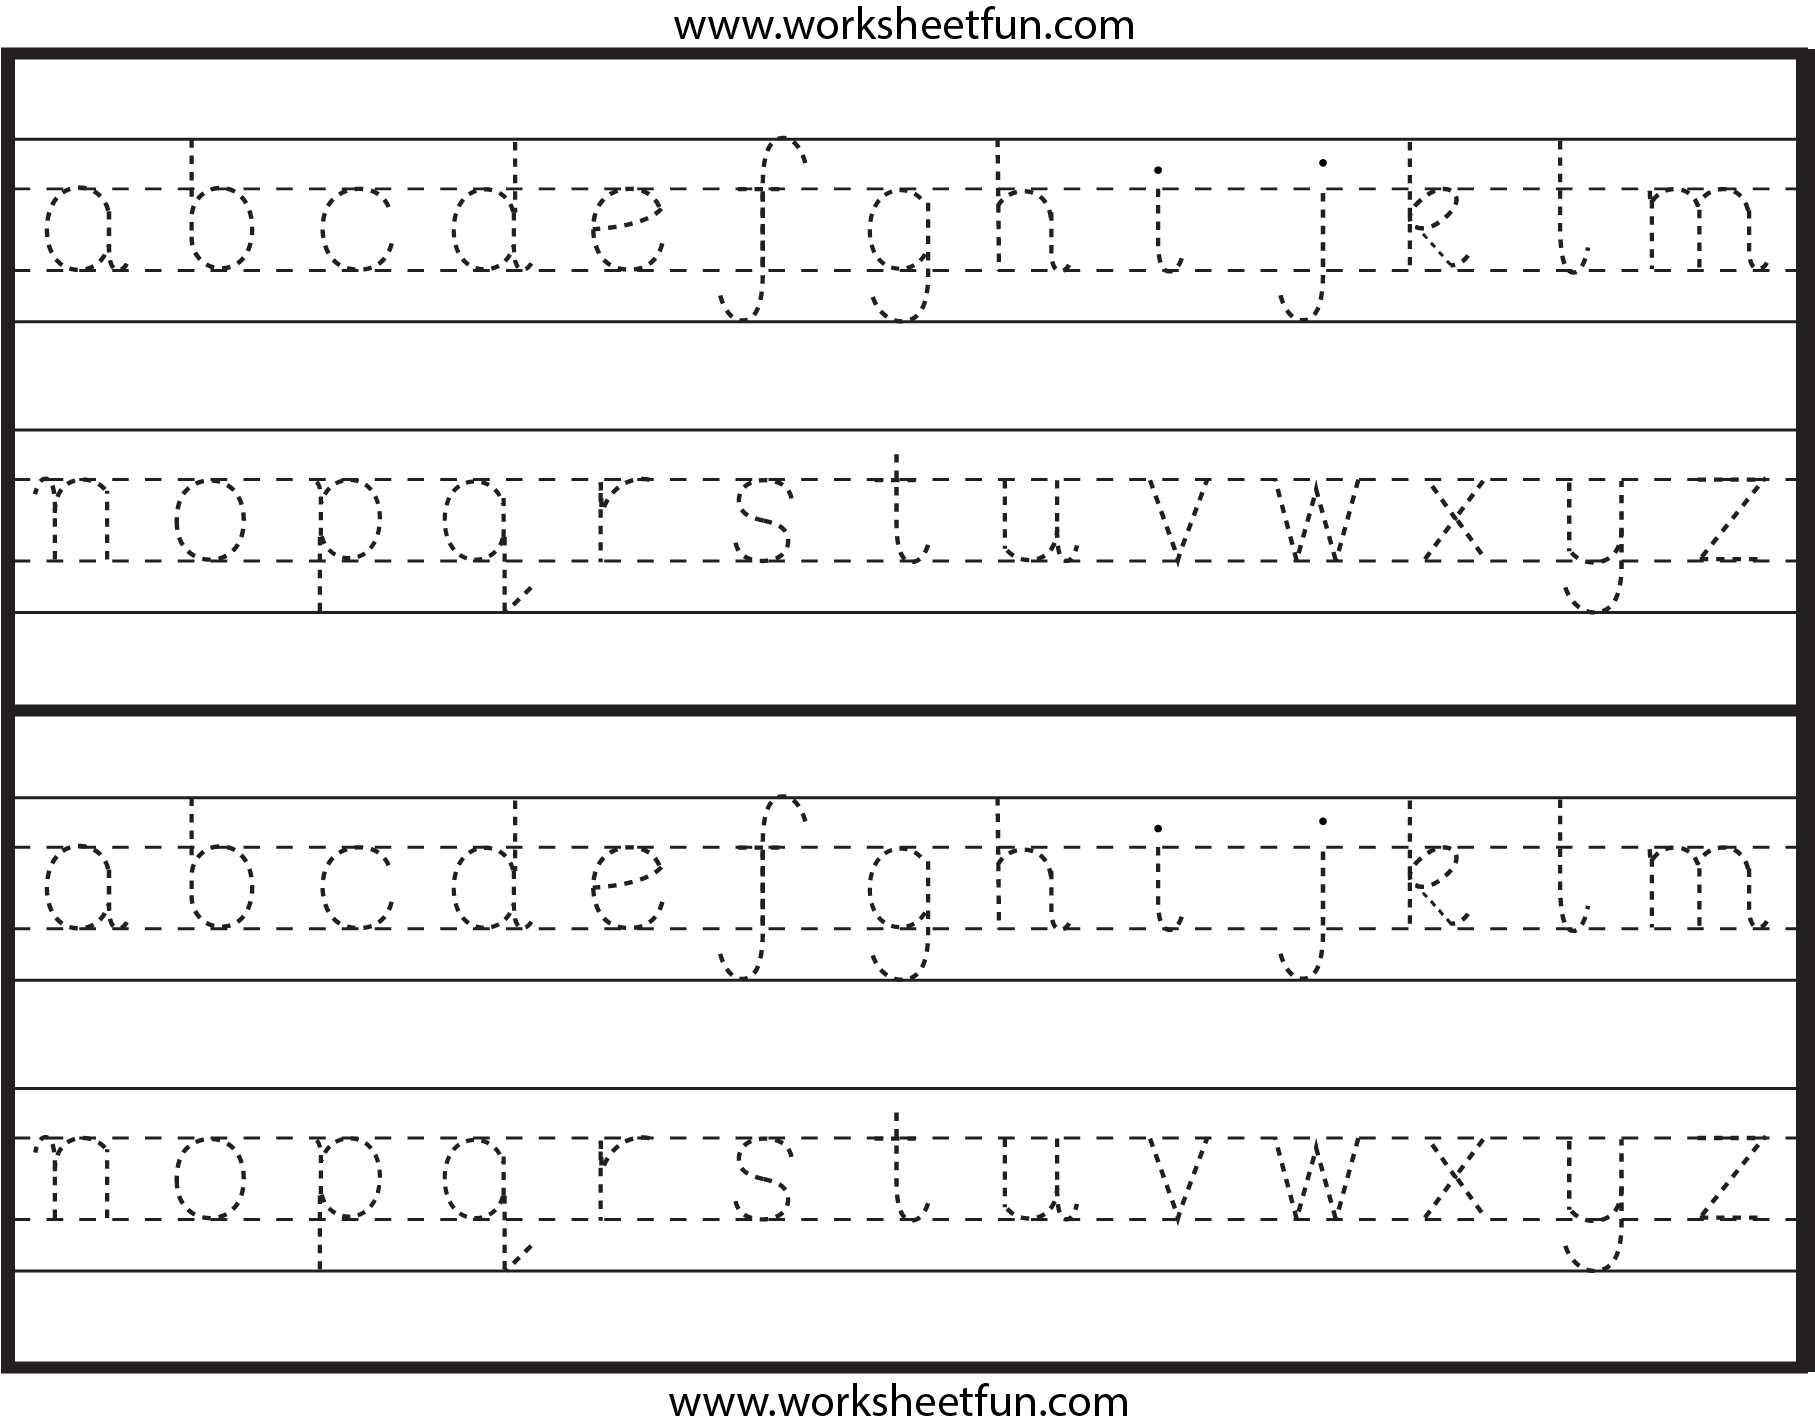 Free Worksheet Kindergarten Alphabet Tracing Worksheets alphabet tracing templates best photos of practice worksheet download